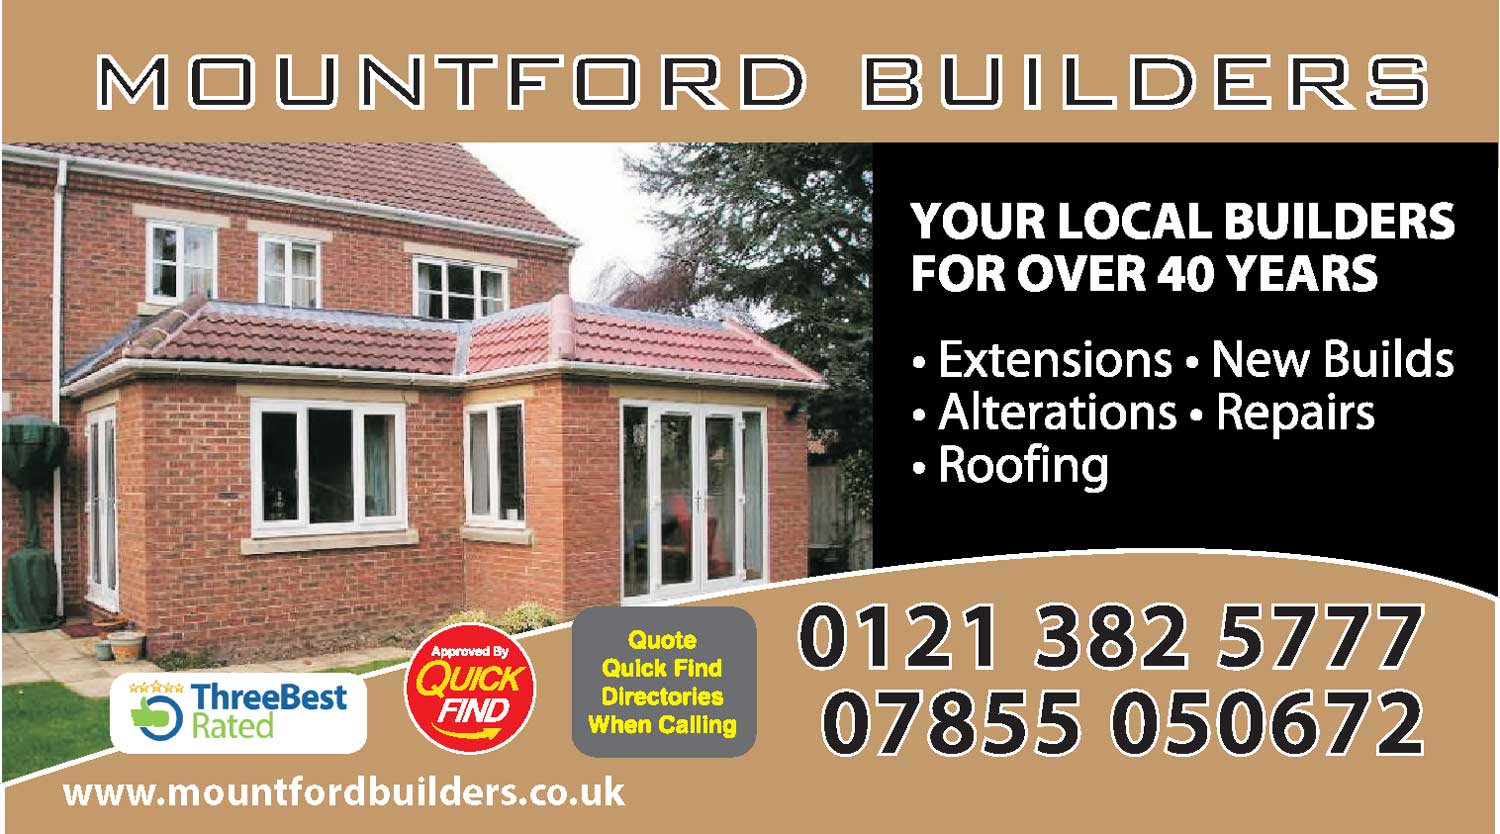 Mountford Builders